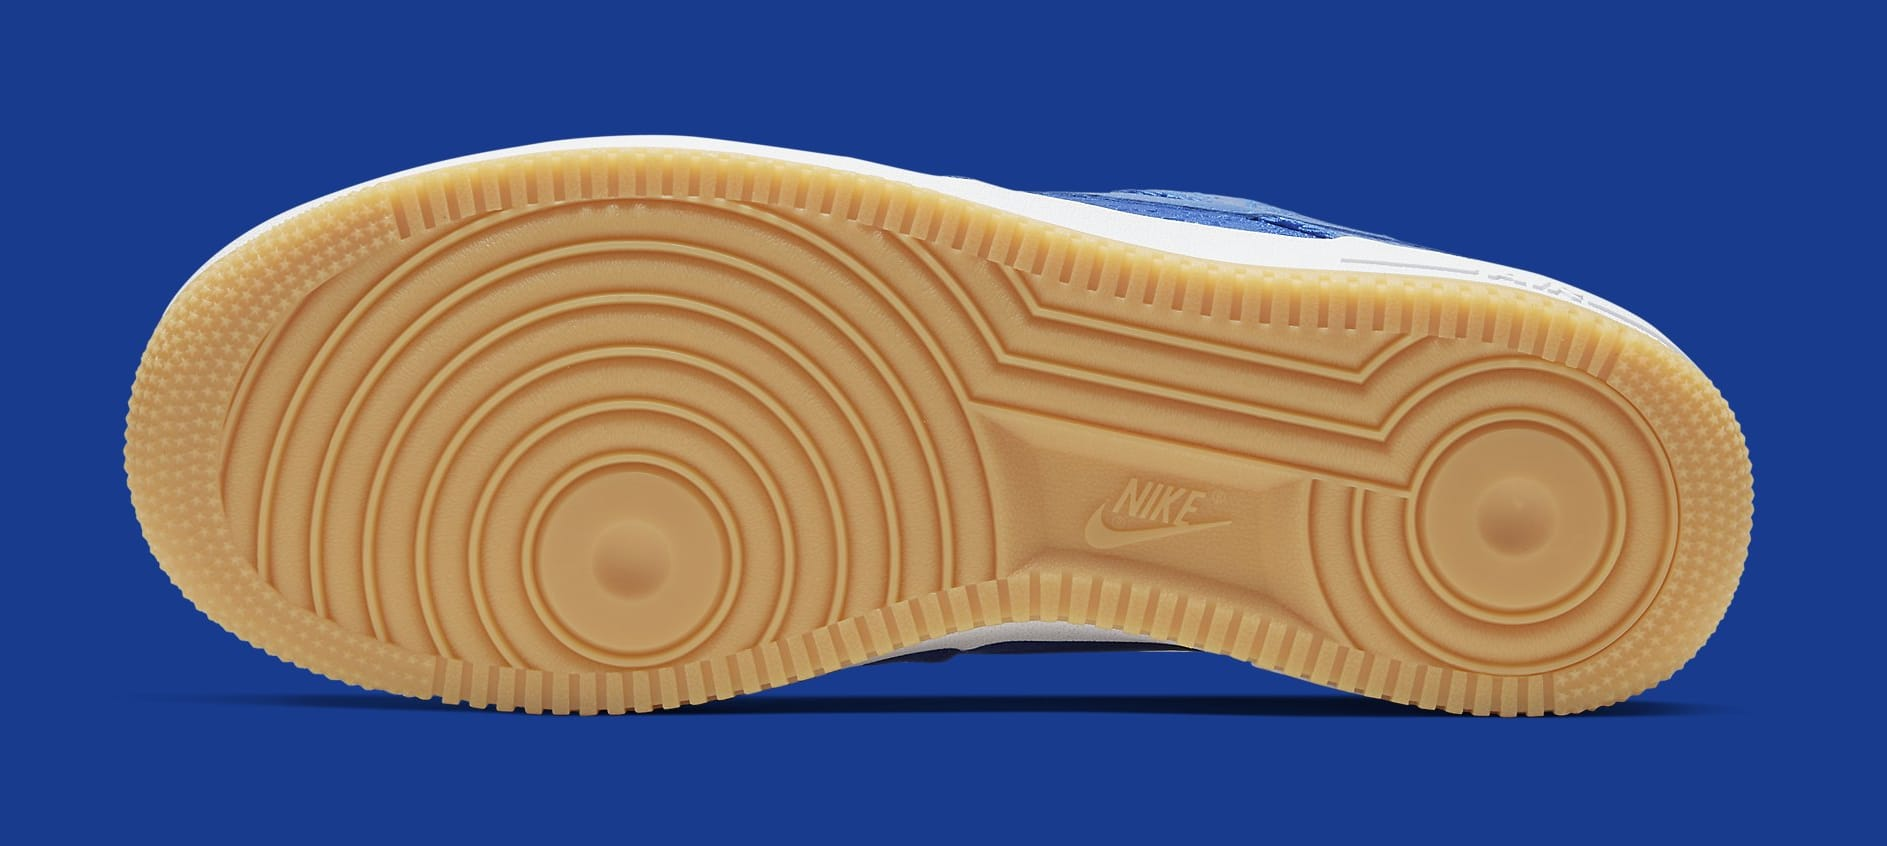 clot-nike-air-force-1-low-blue-cj5290-400-outsole